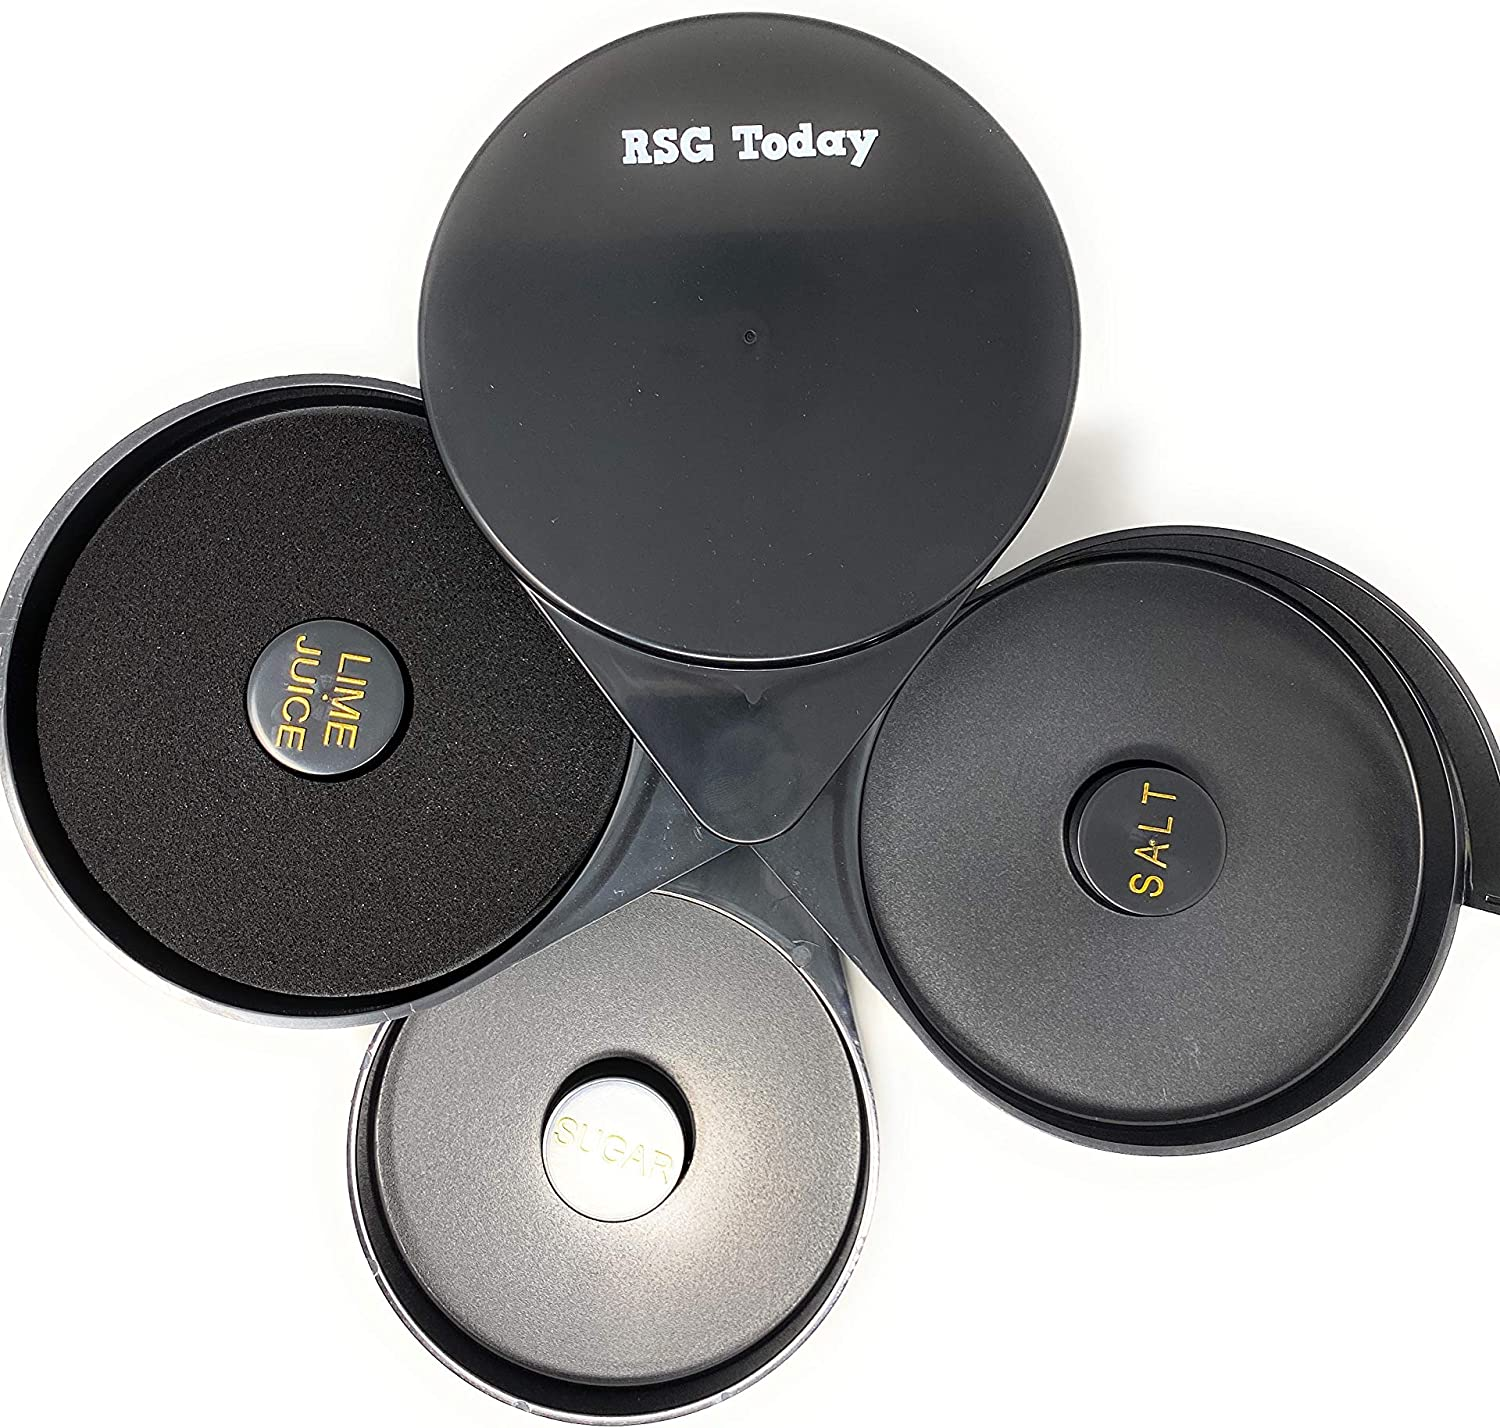 | RSG TODAY Black Plastic Glass Rimmer and Margarita Salter with 3 Compartments: Rimming Salts & Sugars